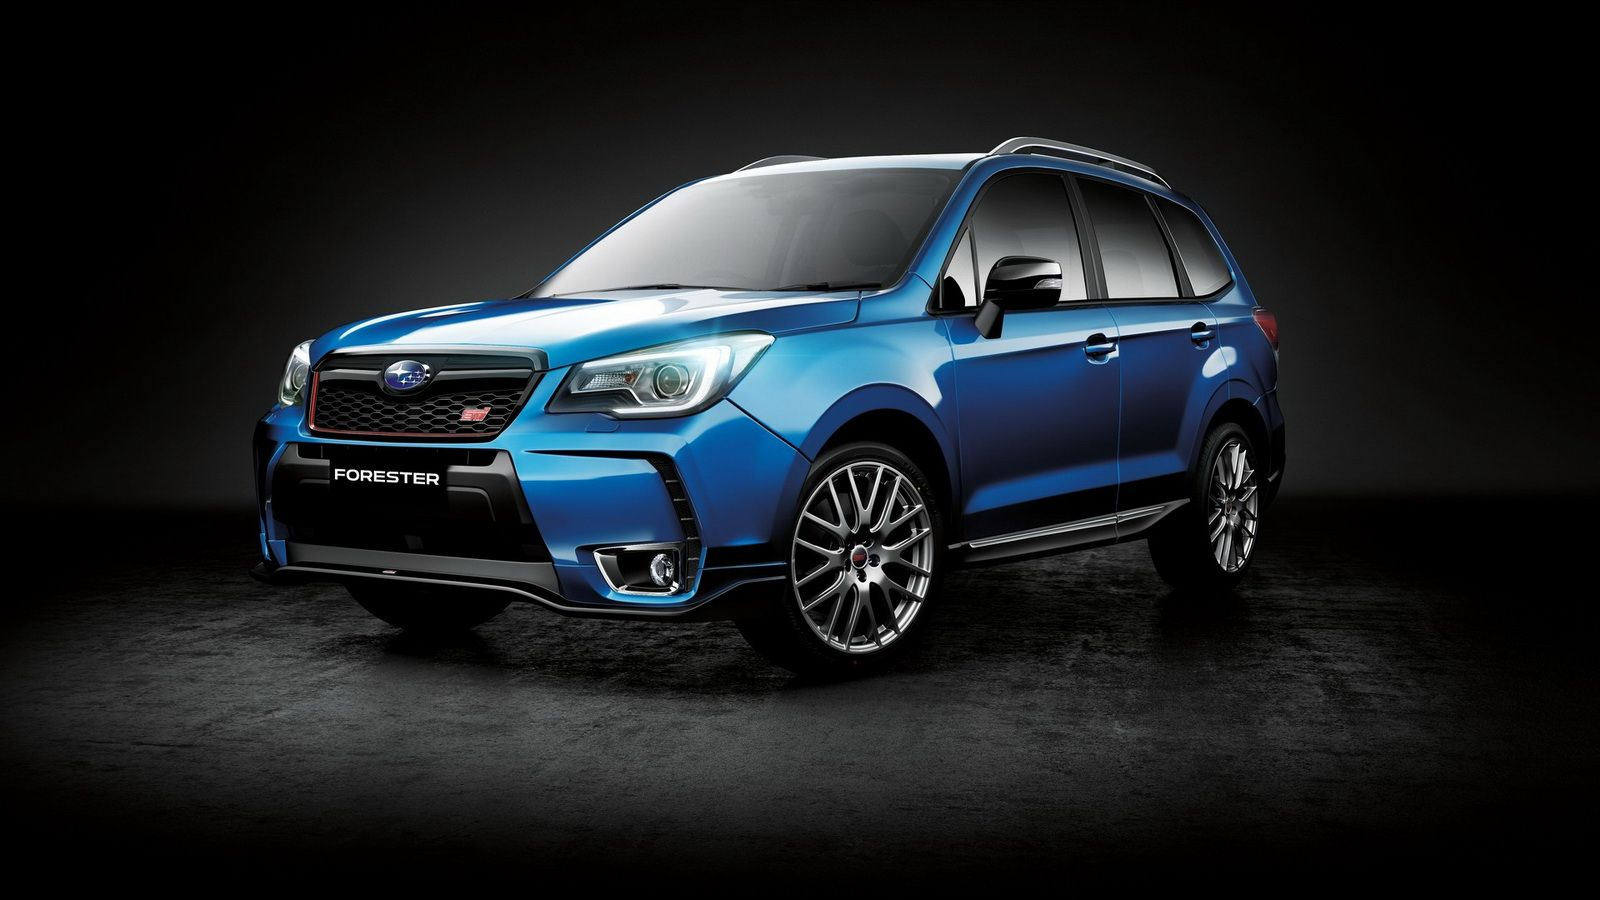 Subaru Forester Ts Special Edition Adds Sti Goodies But It S Only For Australia Carscoops Subaru Forester Subaru Forester Xt Subaru Xt